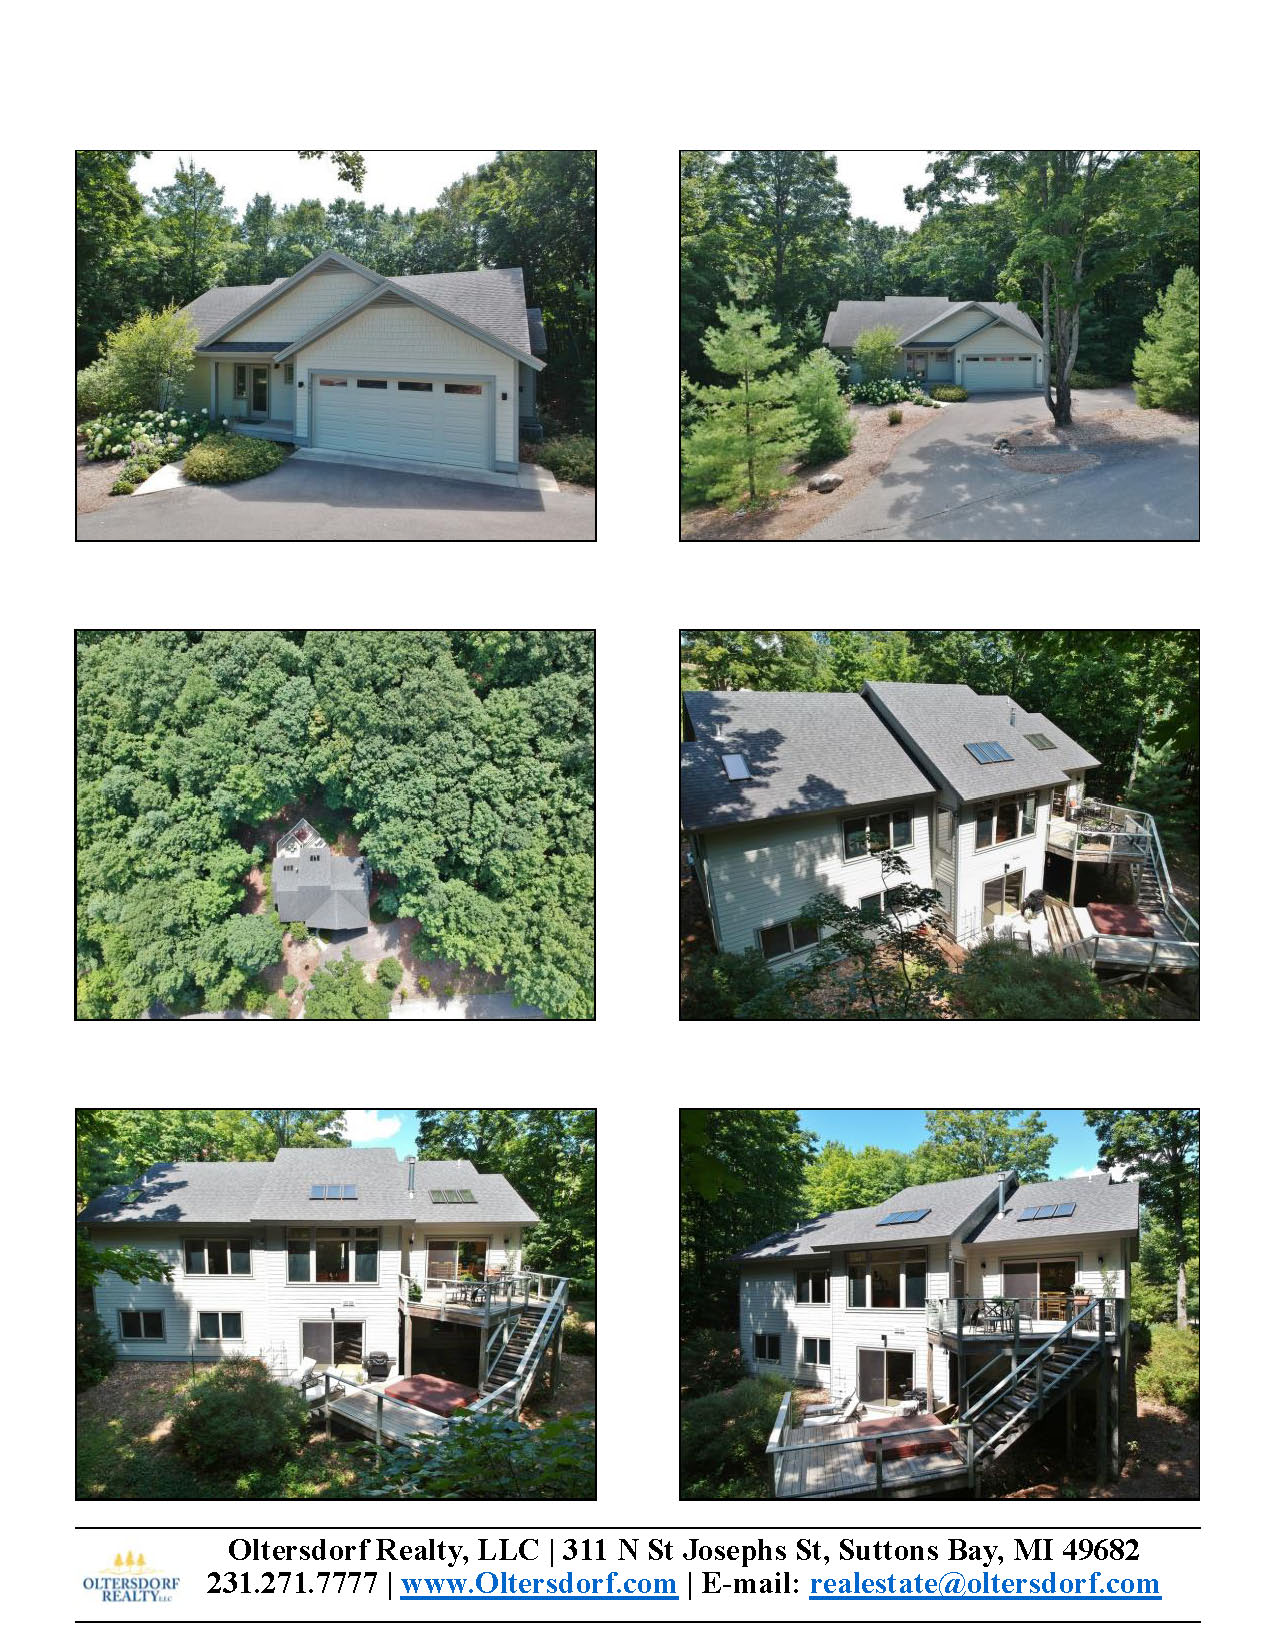 344 W Jefferson Ave Marketing Packet - For Sale by Oltersdorf Realty LLC (2).jpg